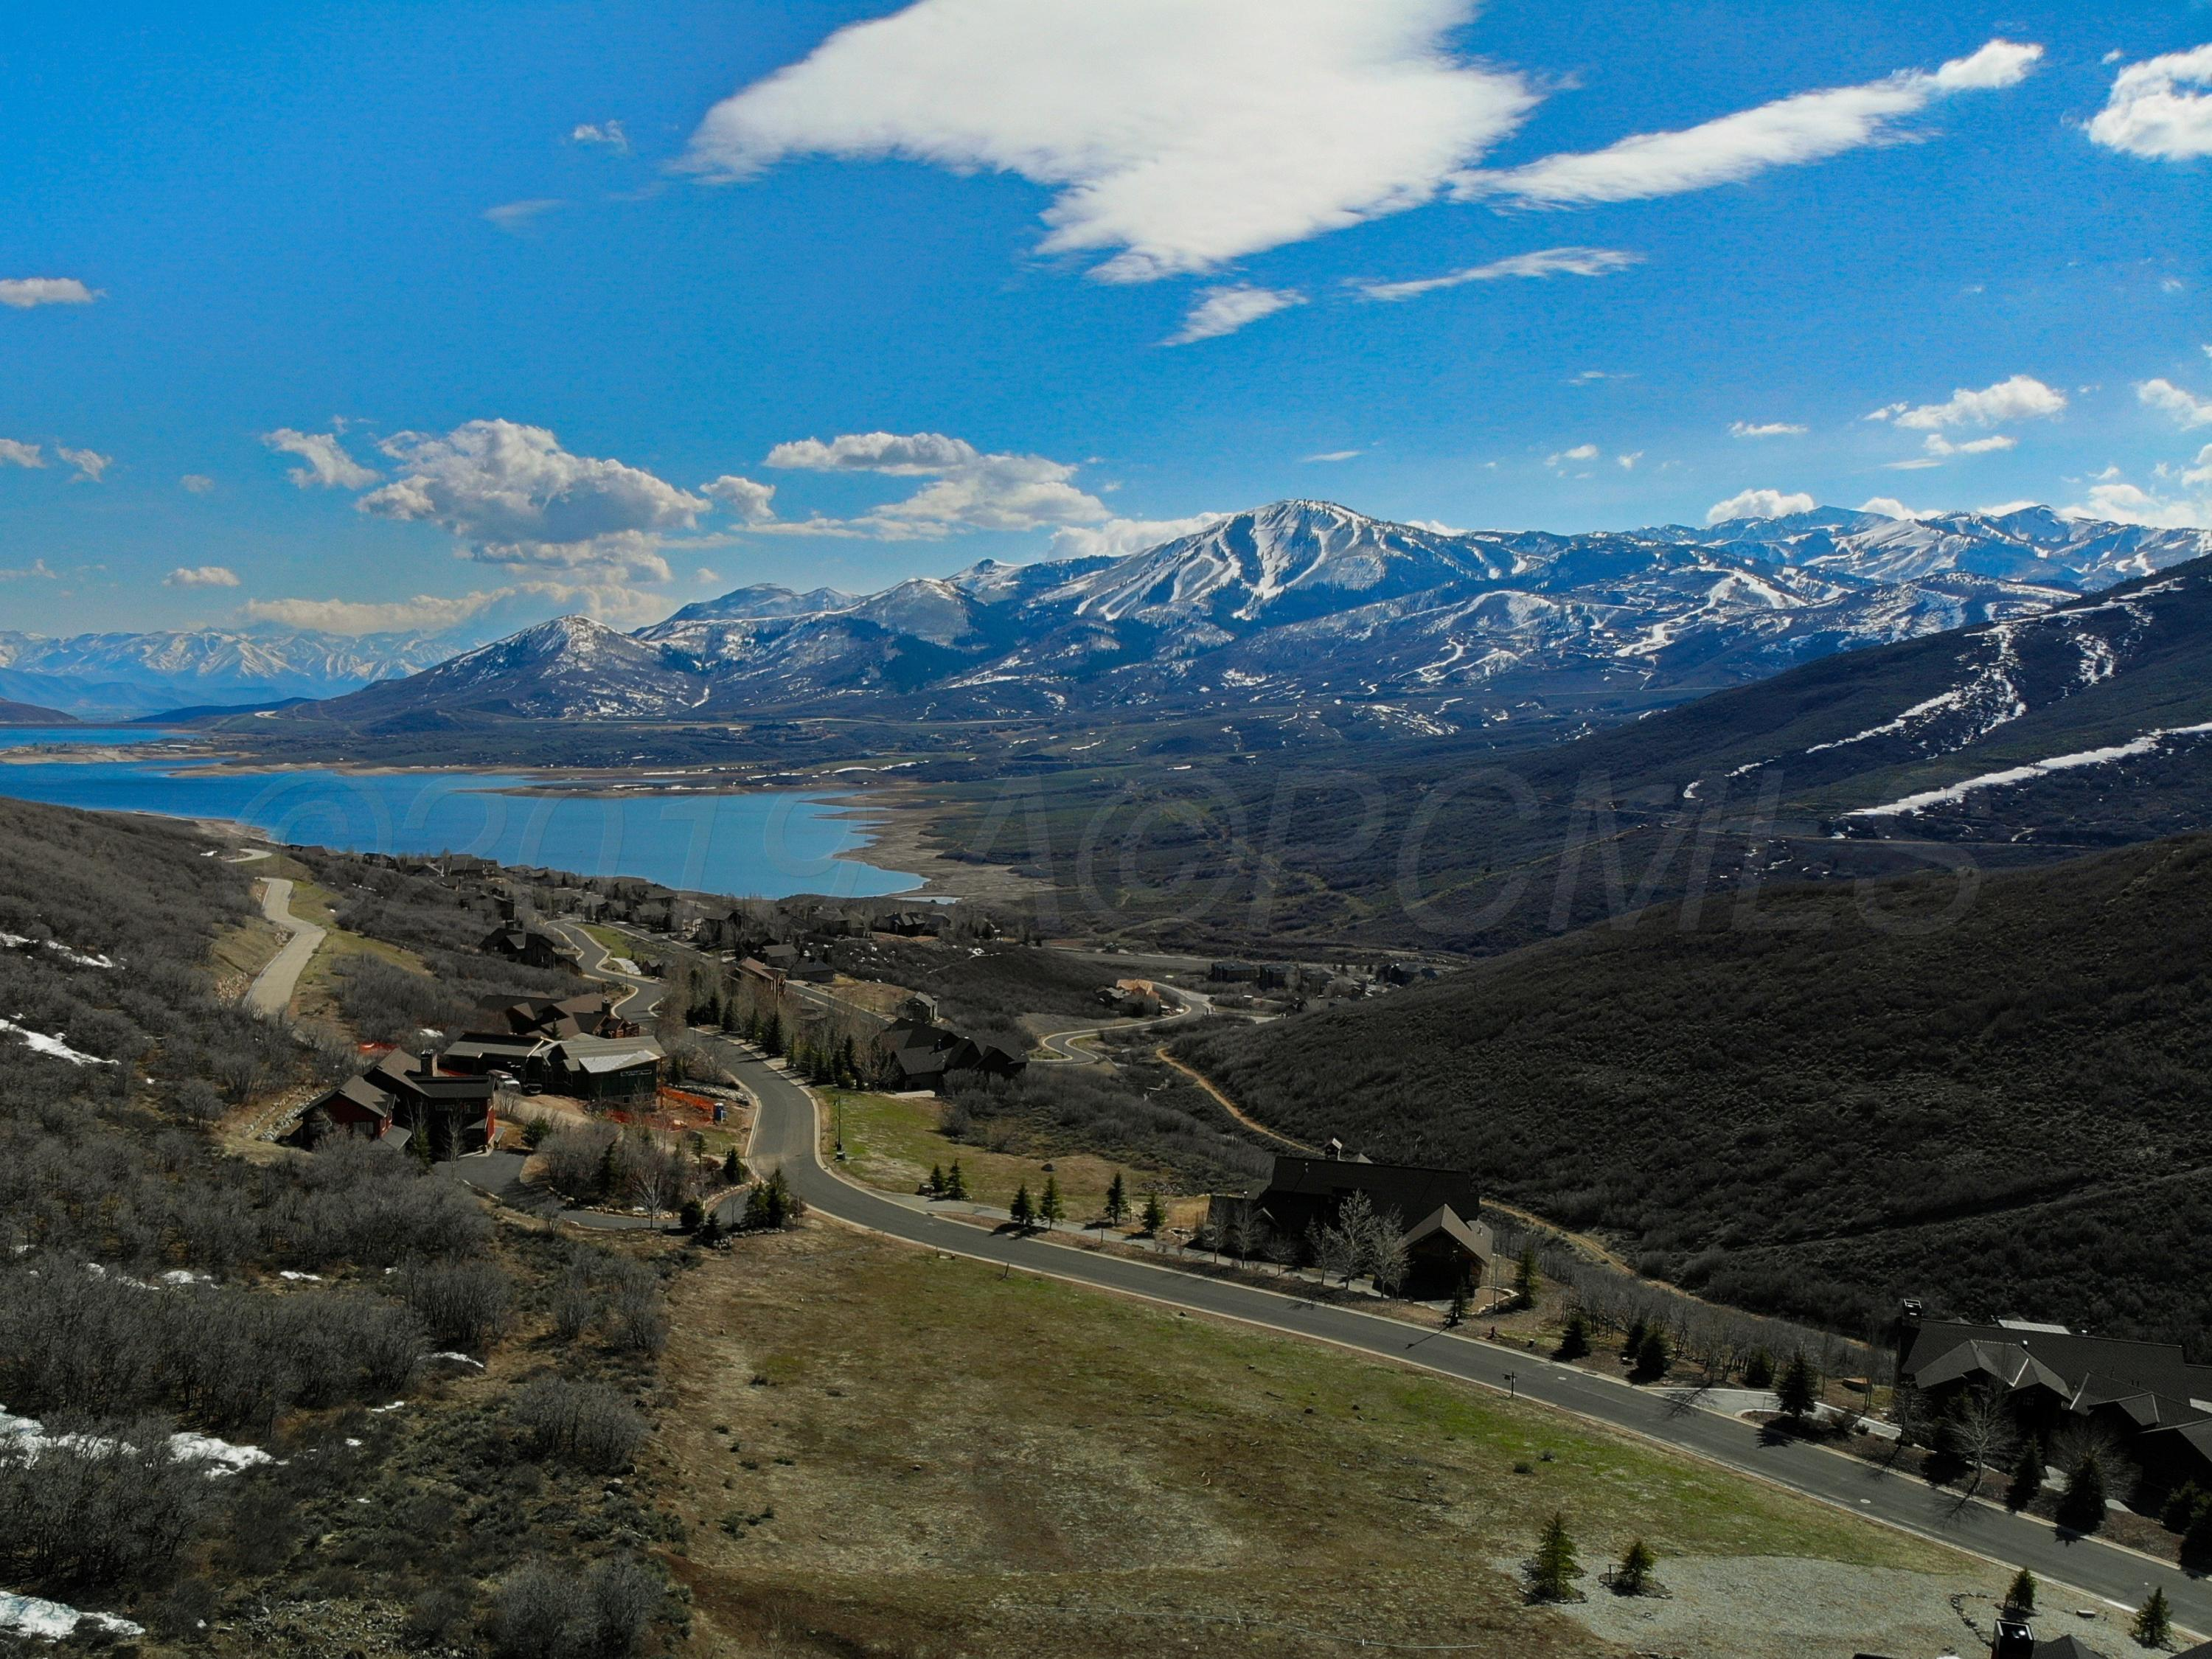 13170 N Slalom Run Drive, Heber City, UT 84032 (MLS #11901955) :: The Lange Group